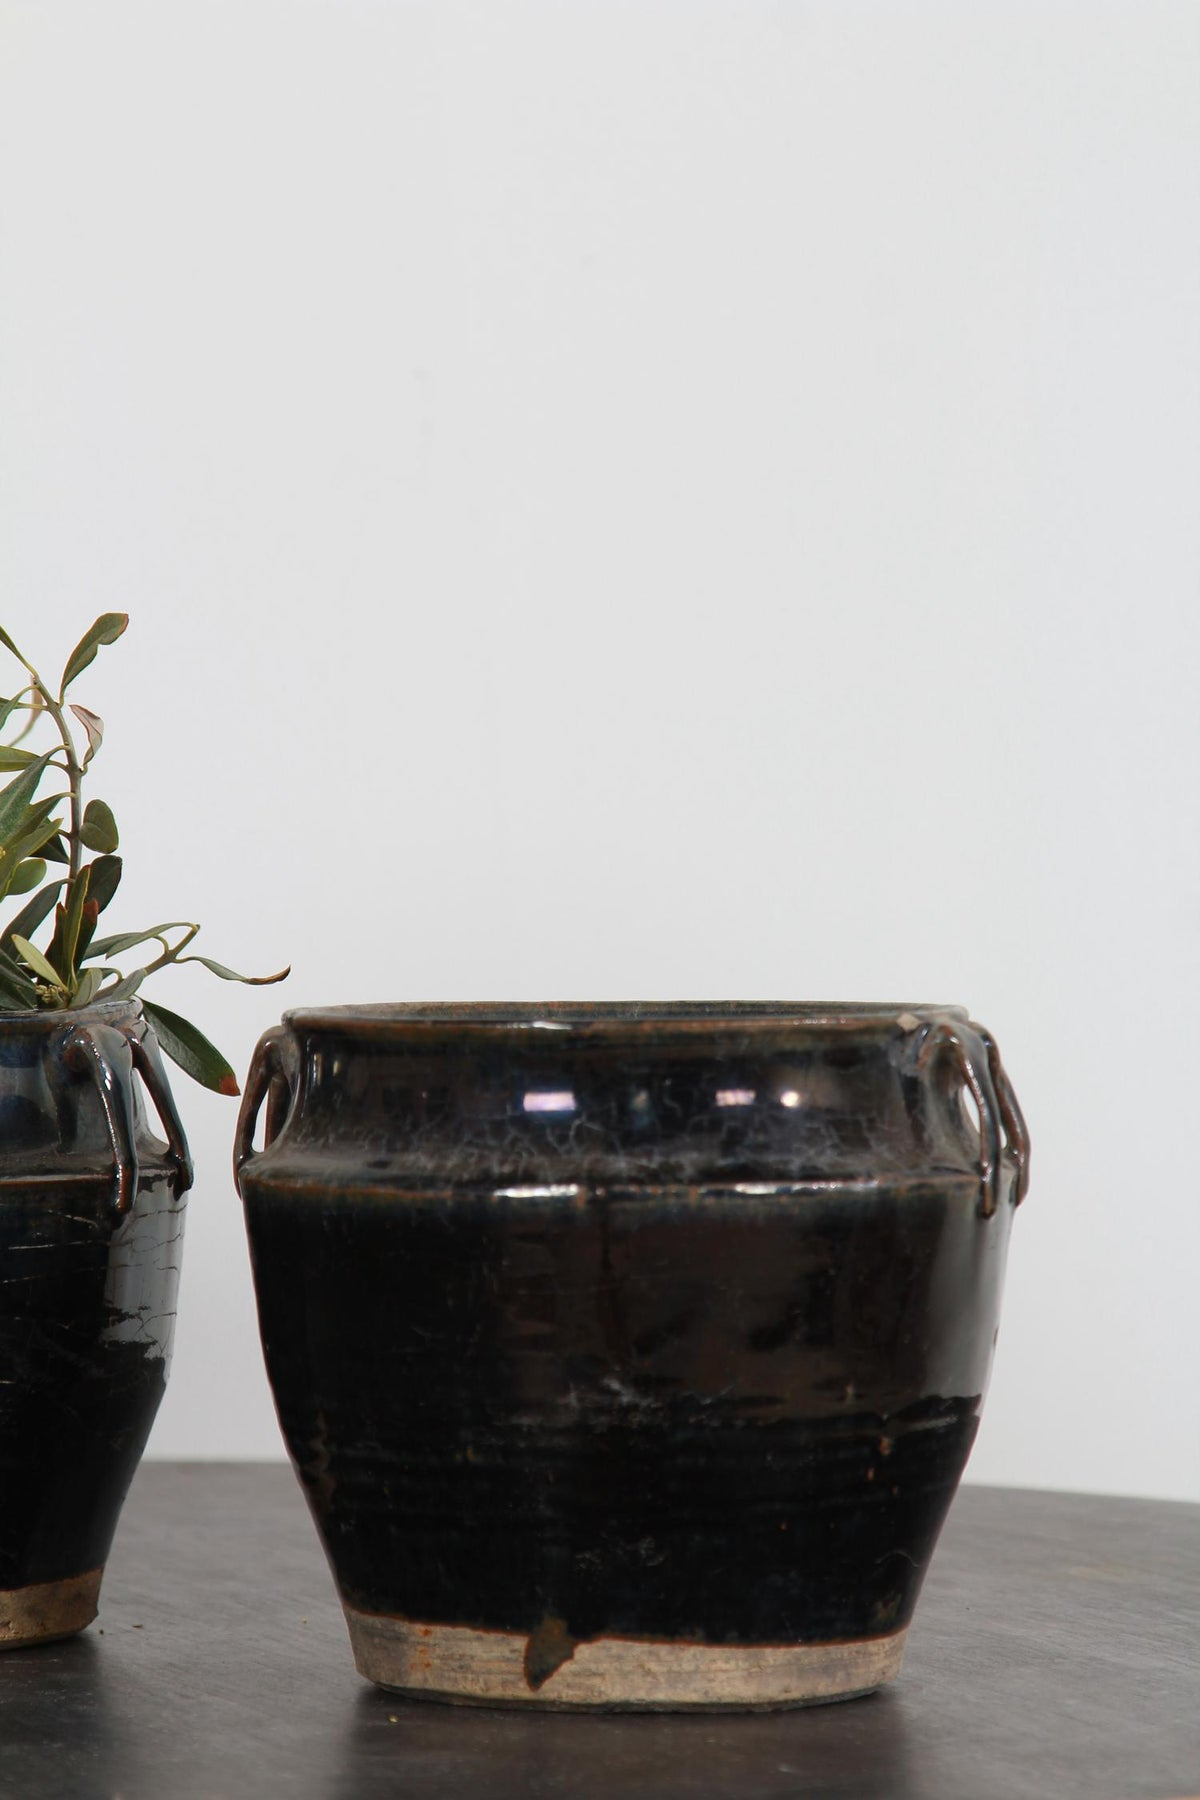 ANTIQUE BLACK HANDMADE CHINESE POTTERY JARS